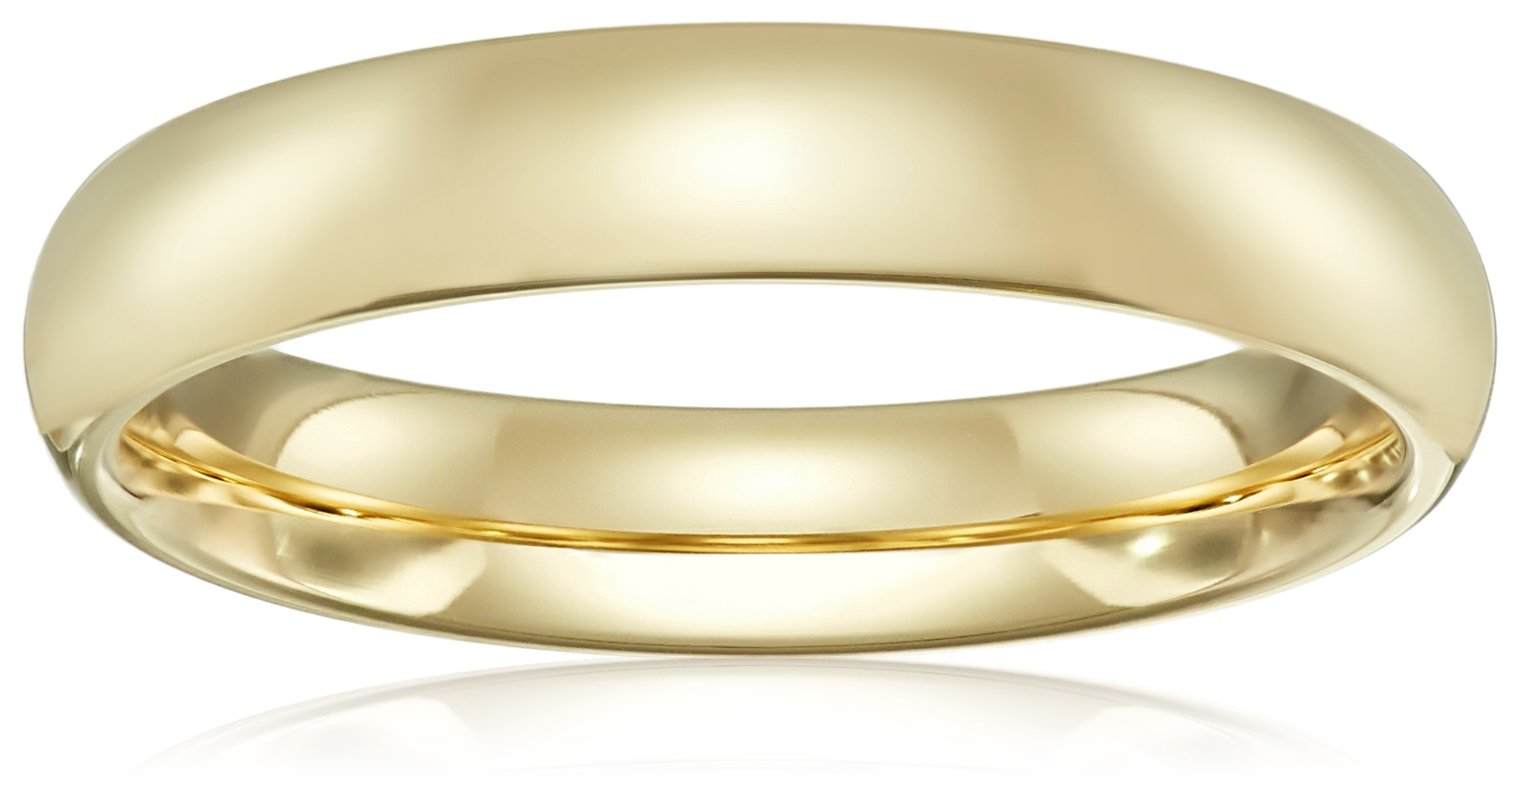 Standard Comfort-Fit 10K Yellow Gold Band, 4mm, Size 12